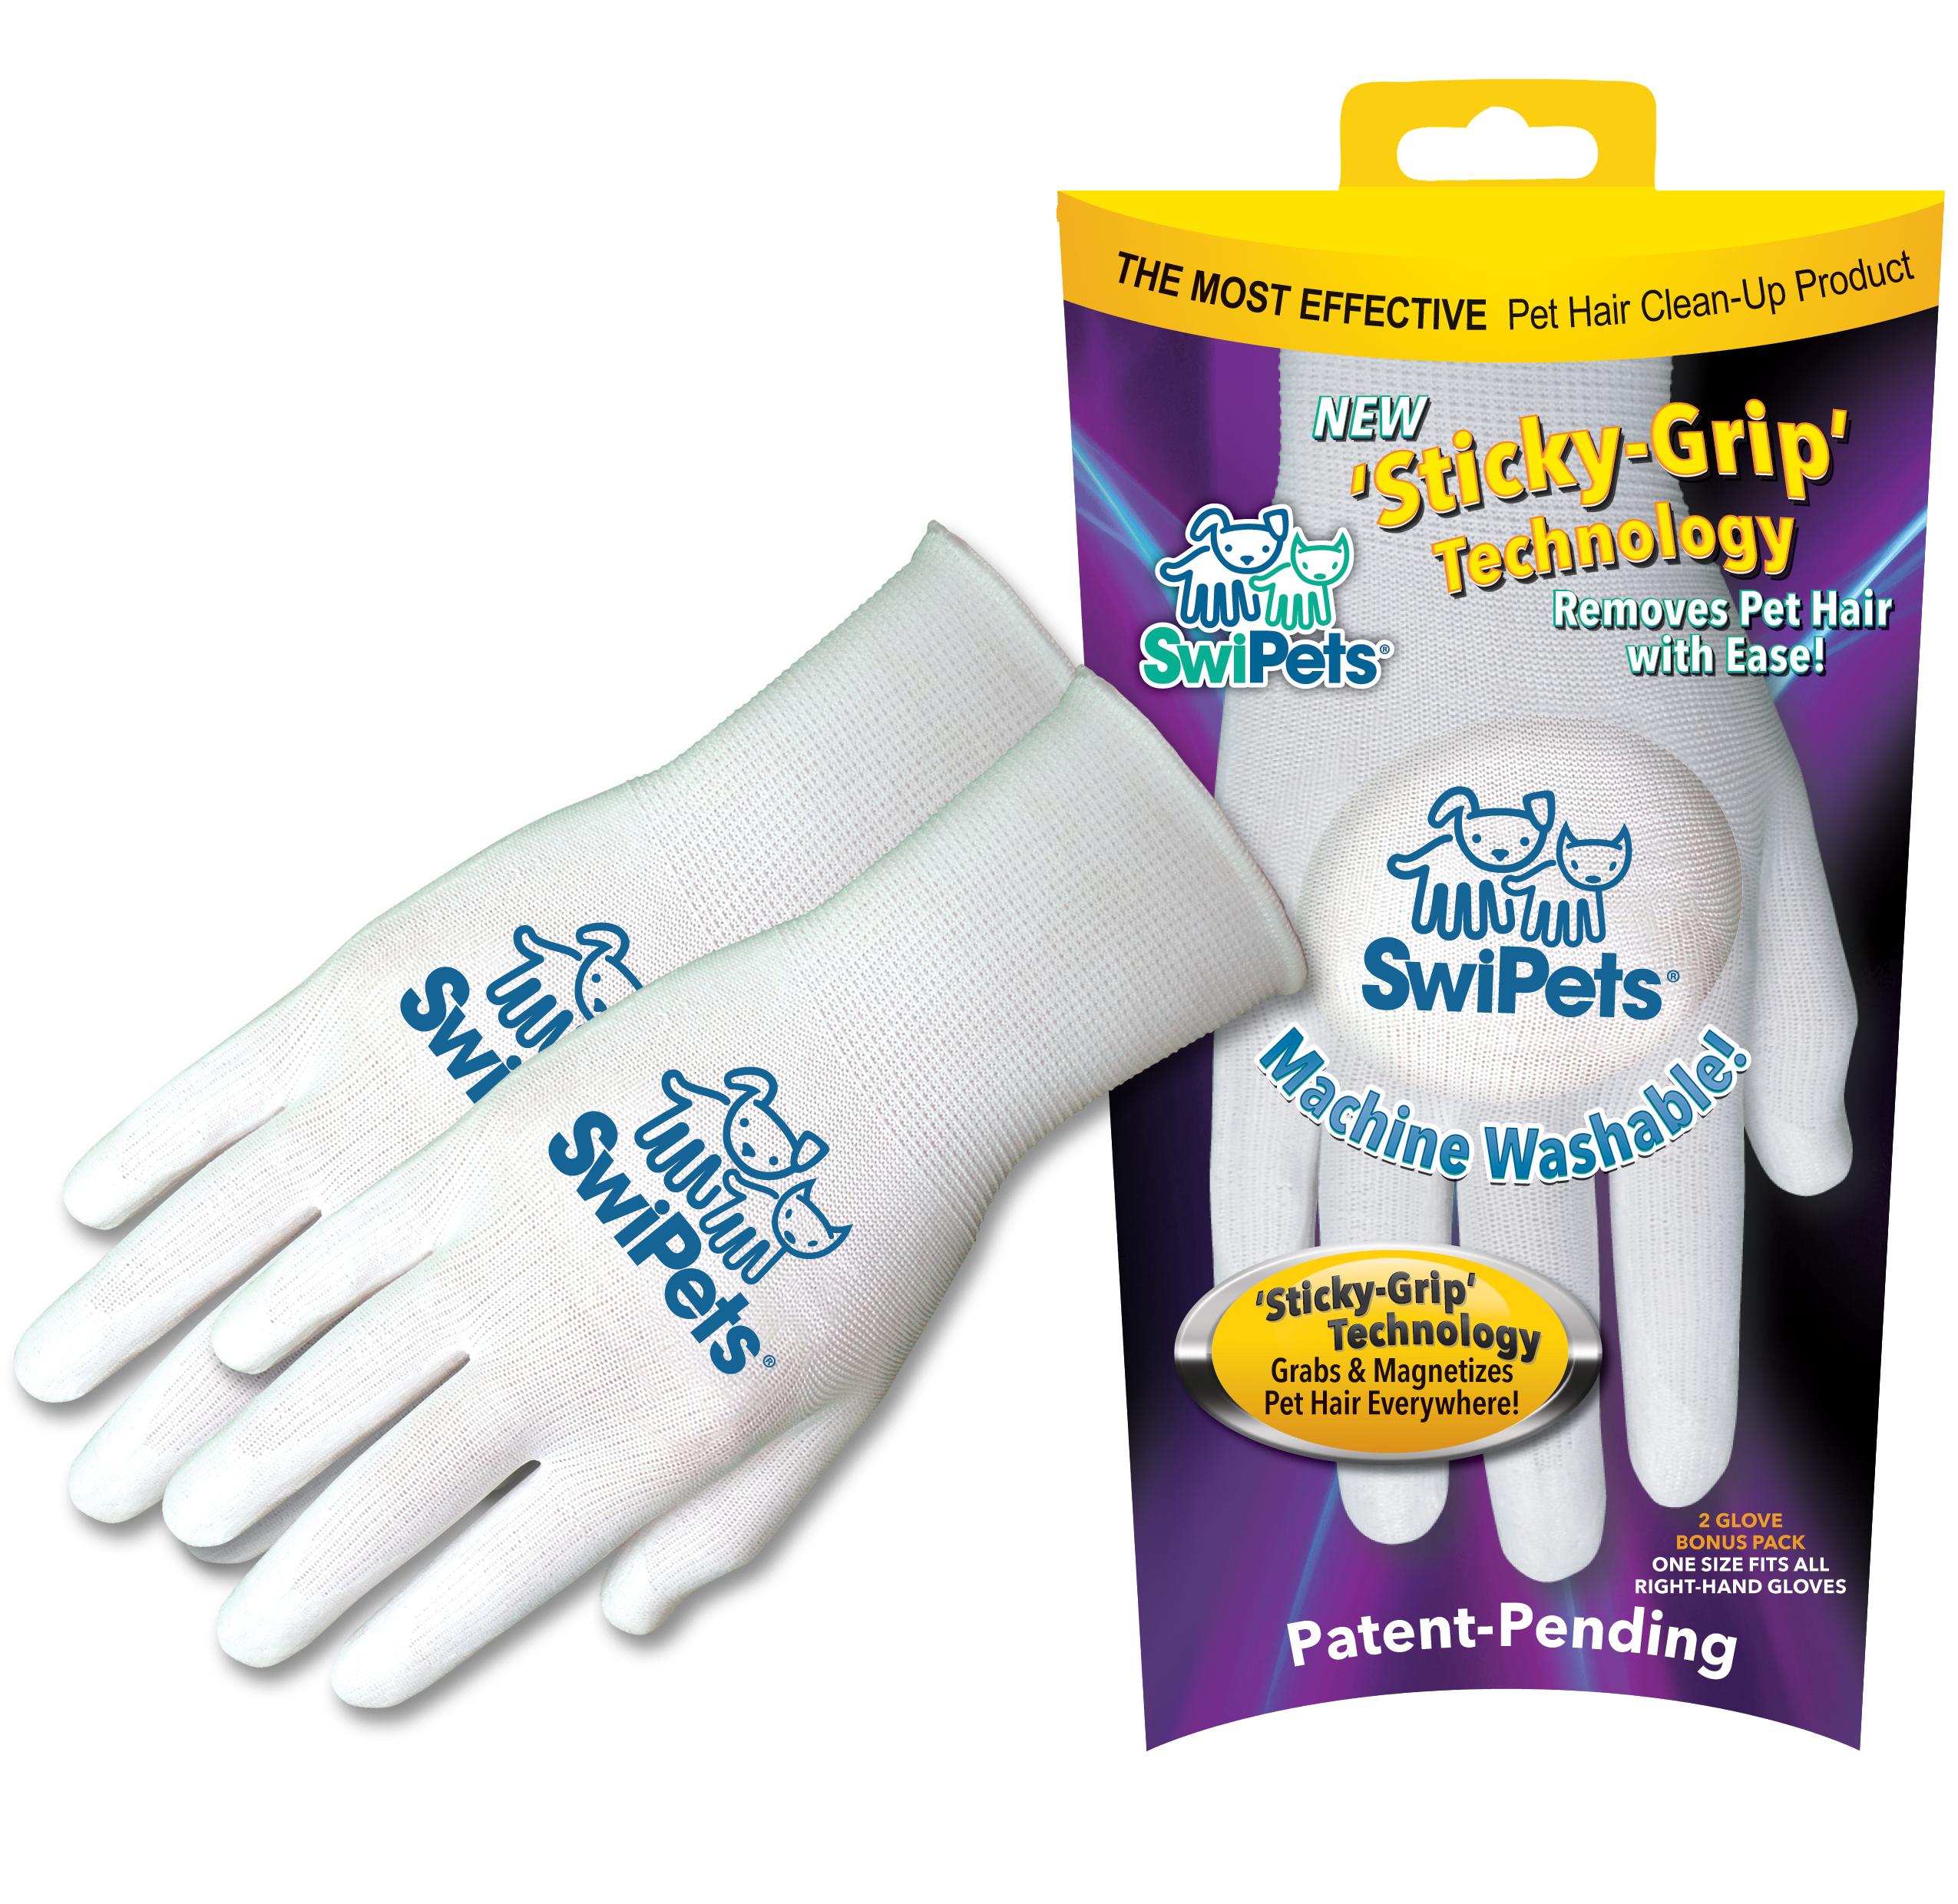 Win a Double-Pack of SwiPets Pet Hair Cleaning Glove!